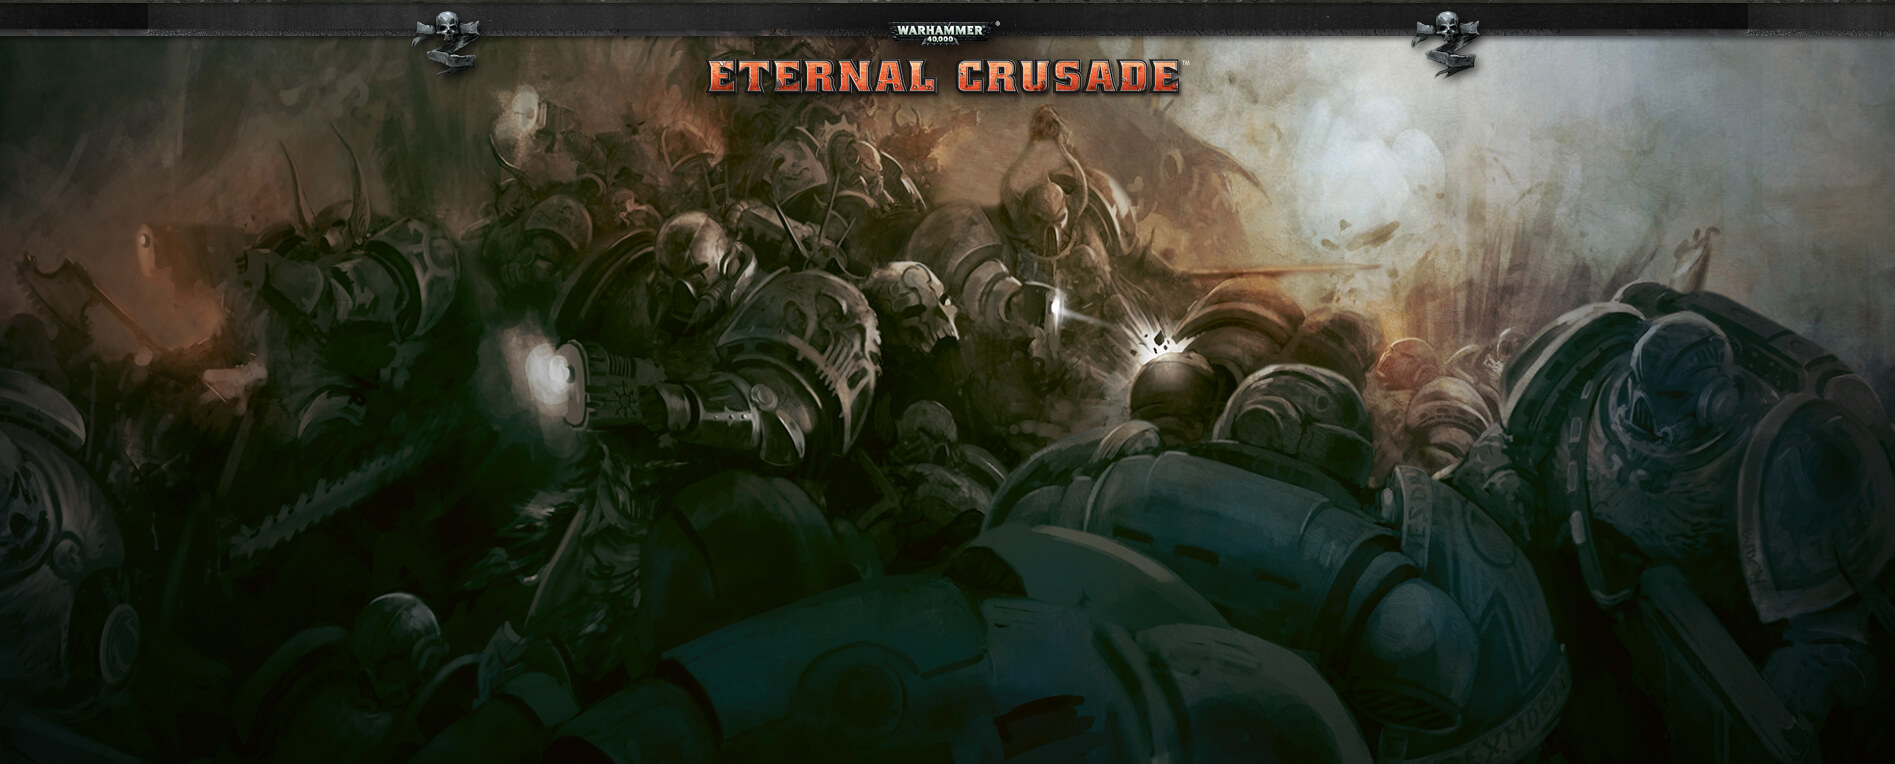 Warhammer 40000 Eternal Crusade Download Crack Free + Torrent